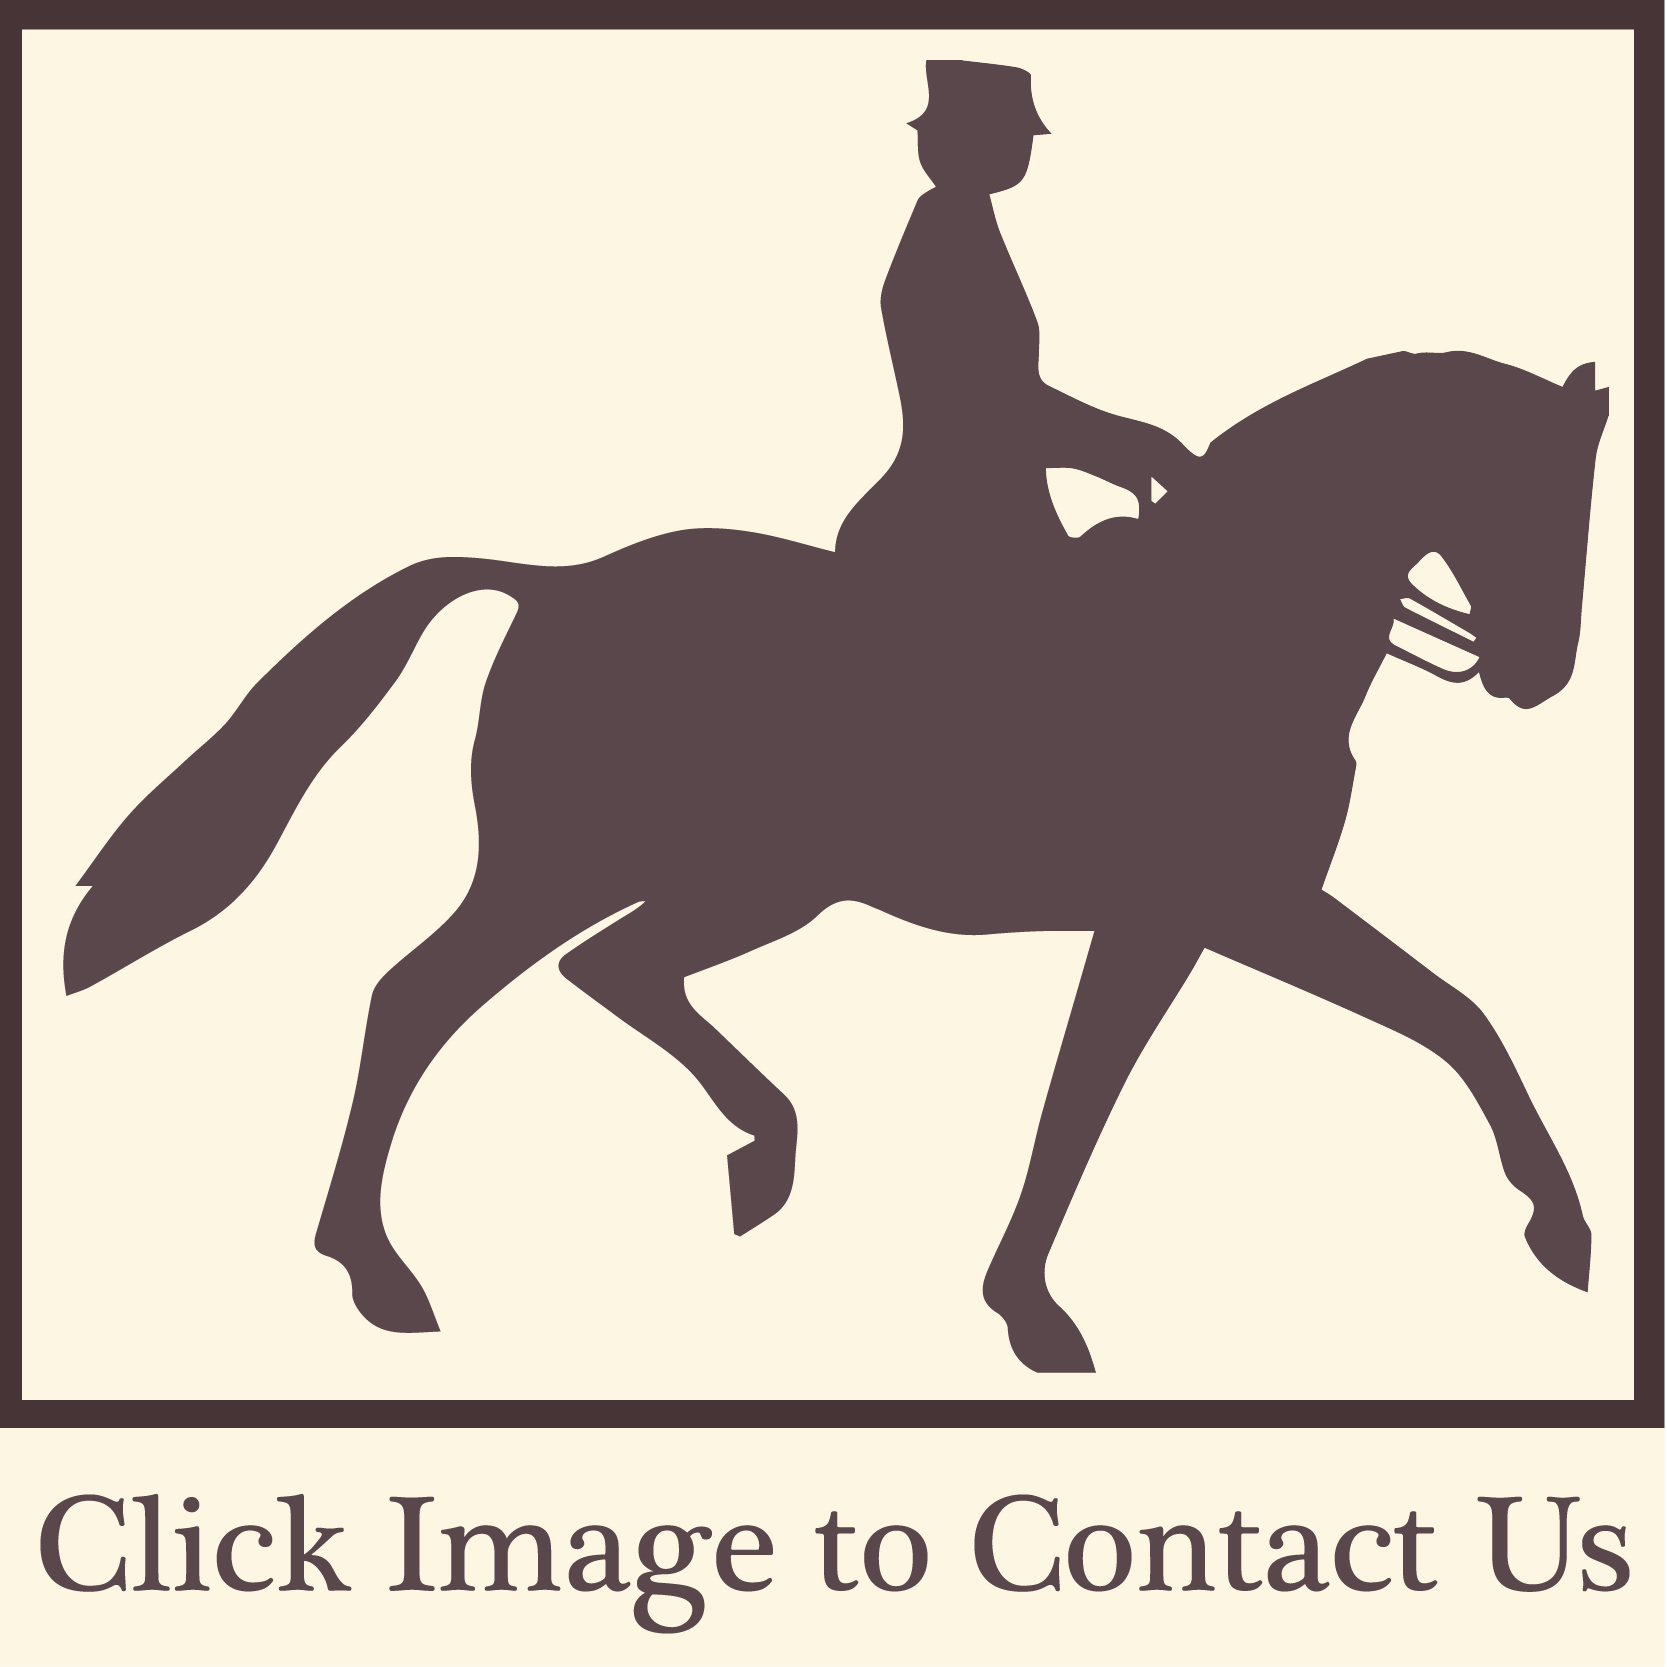 Graphic - Suits Dressage. - Click to Contact Us ai-01.jpg